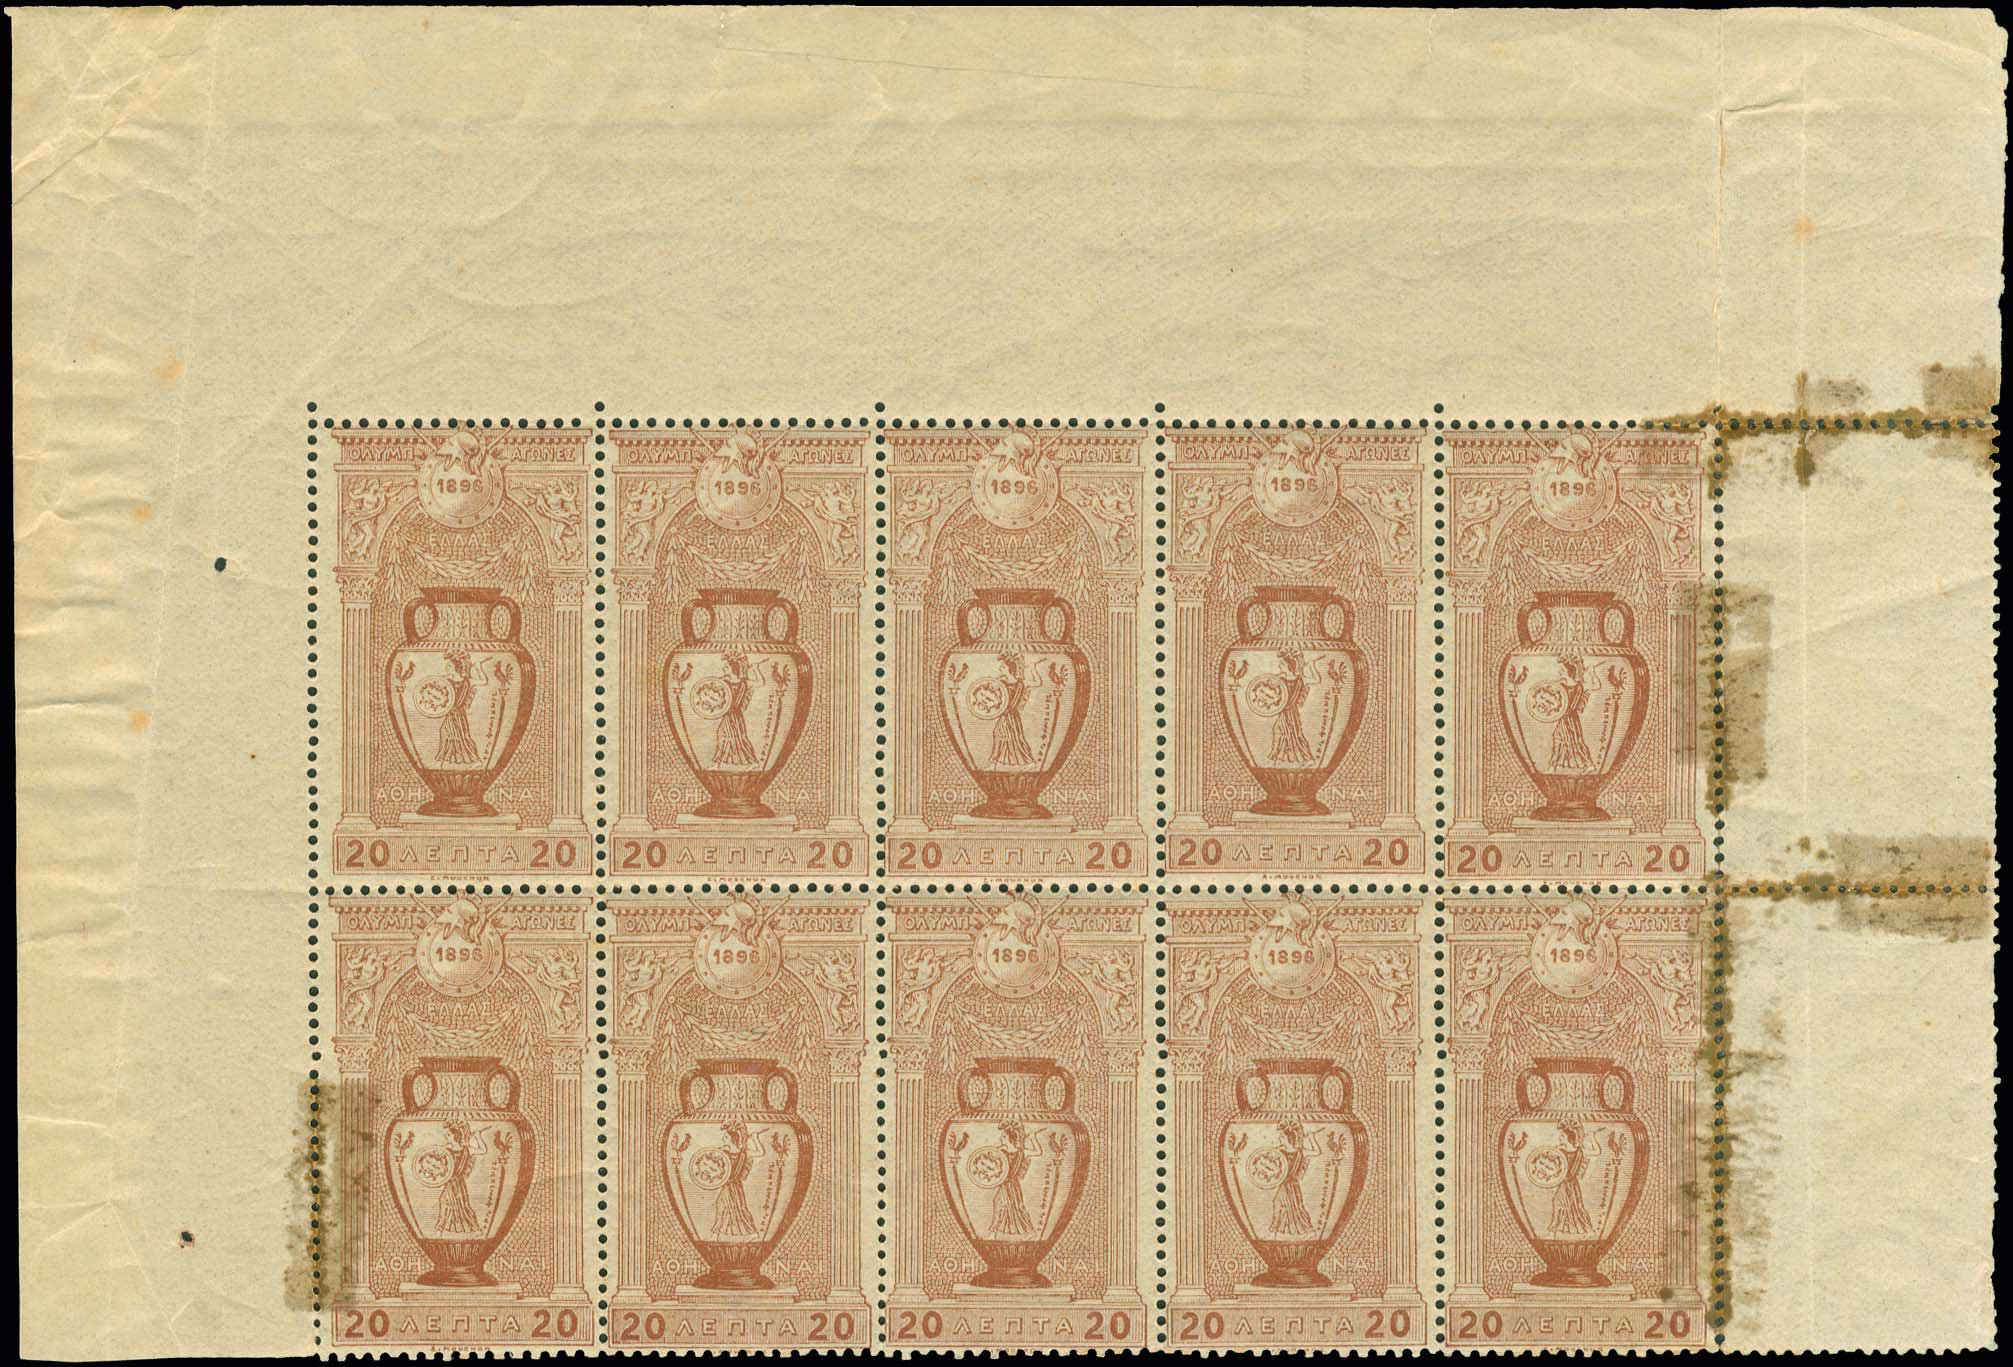 Lot 350 - -  1896 FIRST OLYMPIC GAMES 1896 first olympic games -  A. Karamitsos Public Auction 668 General Philatelic Auction